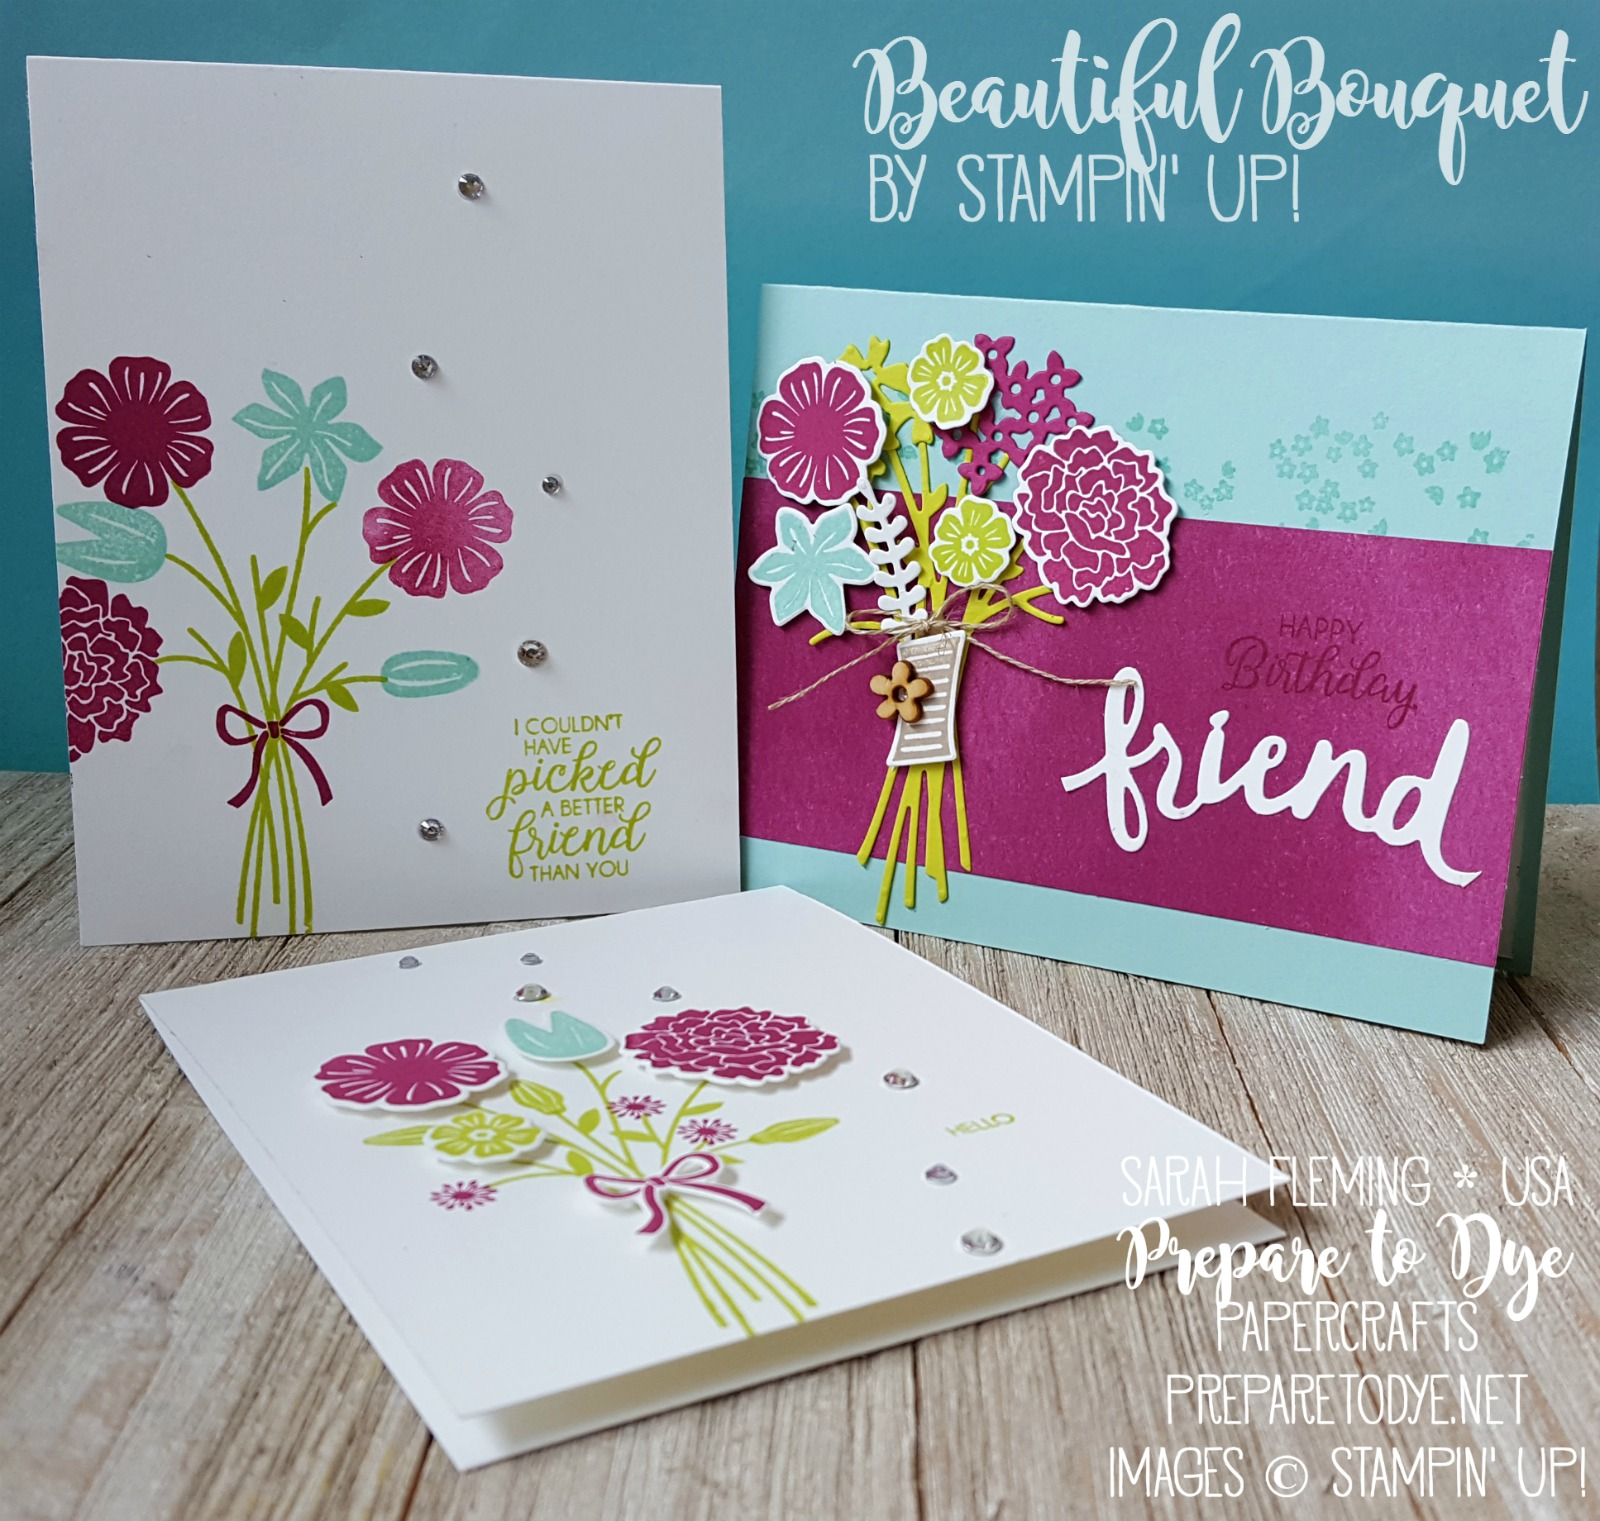 Stampin' Up! Beautiful Bouquet bundle with Bouquet Bunch framelits and Lovely Words thinlits - Creativity Your Way Facebook Live session - Sarah Fleming - Prepare to Dye Papercrafts - #GDP093